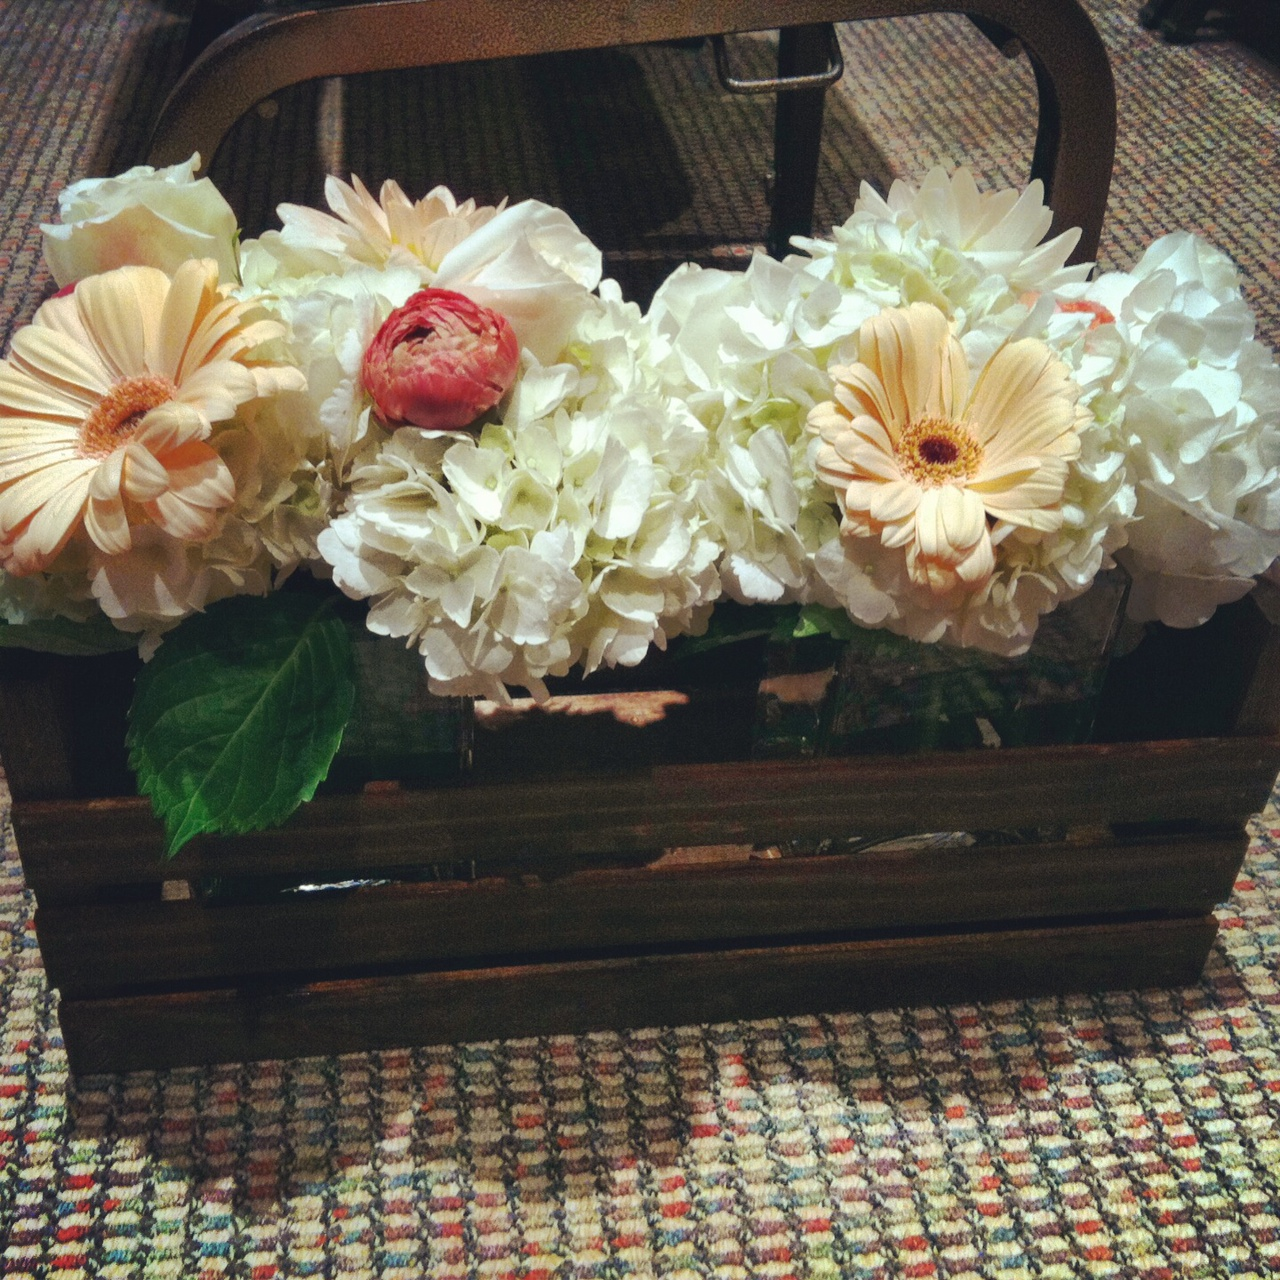 Fun fact: The mother of the bride hand made 20 of these gorgeous flower crates.